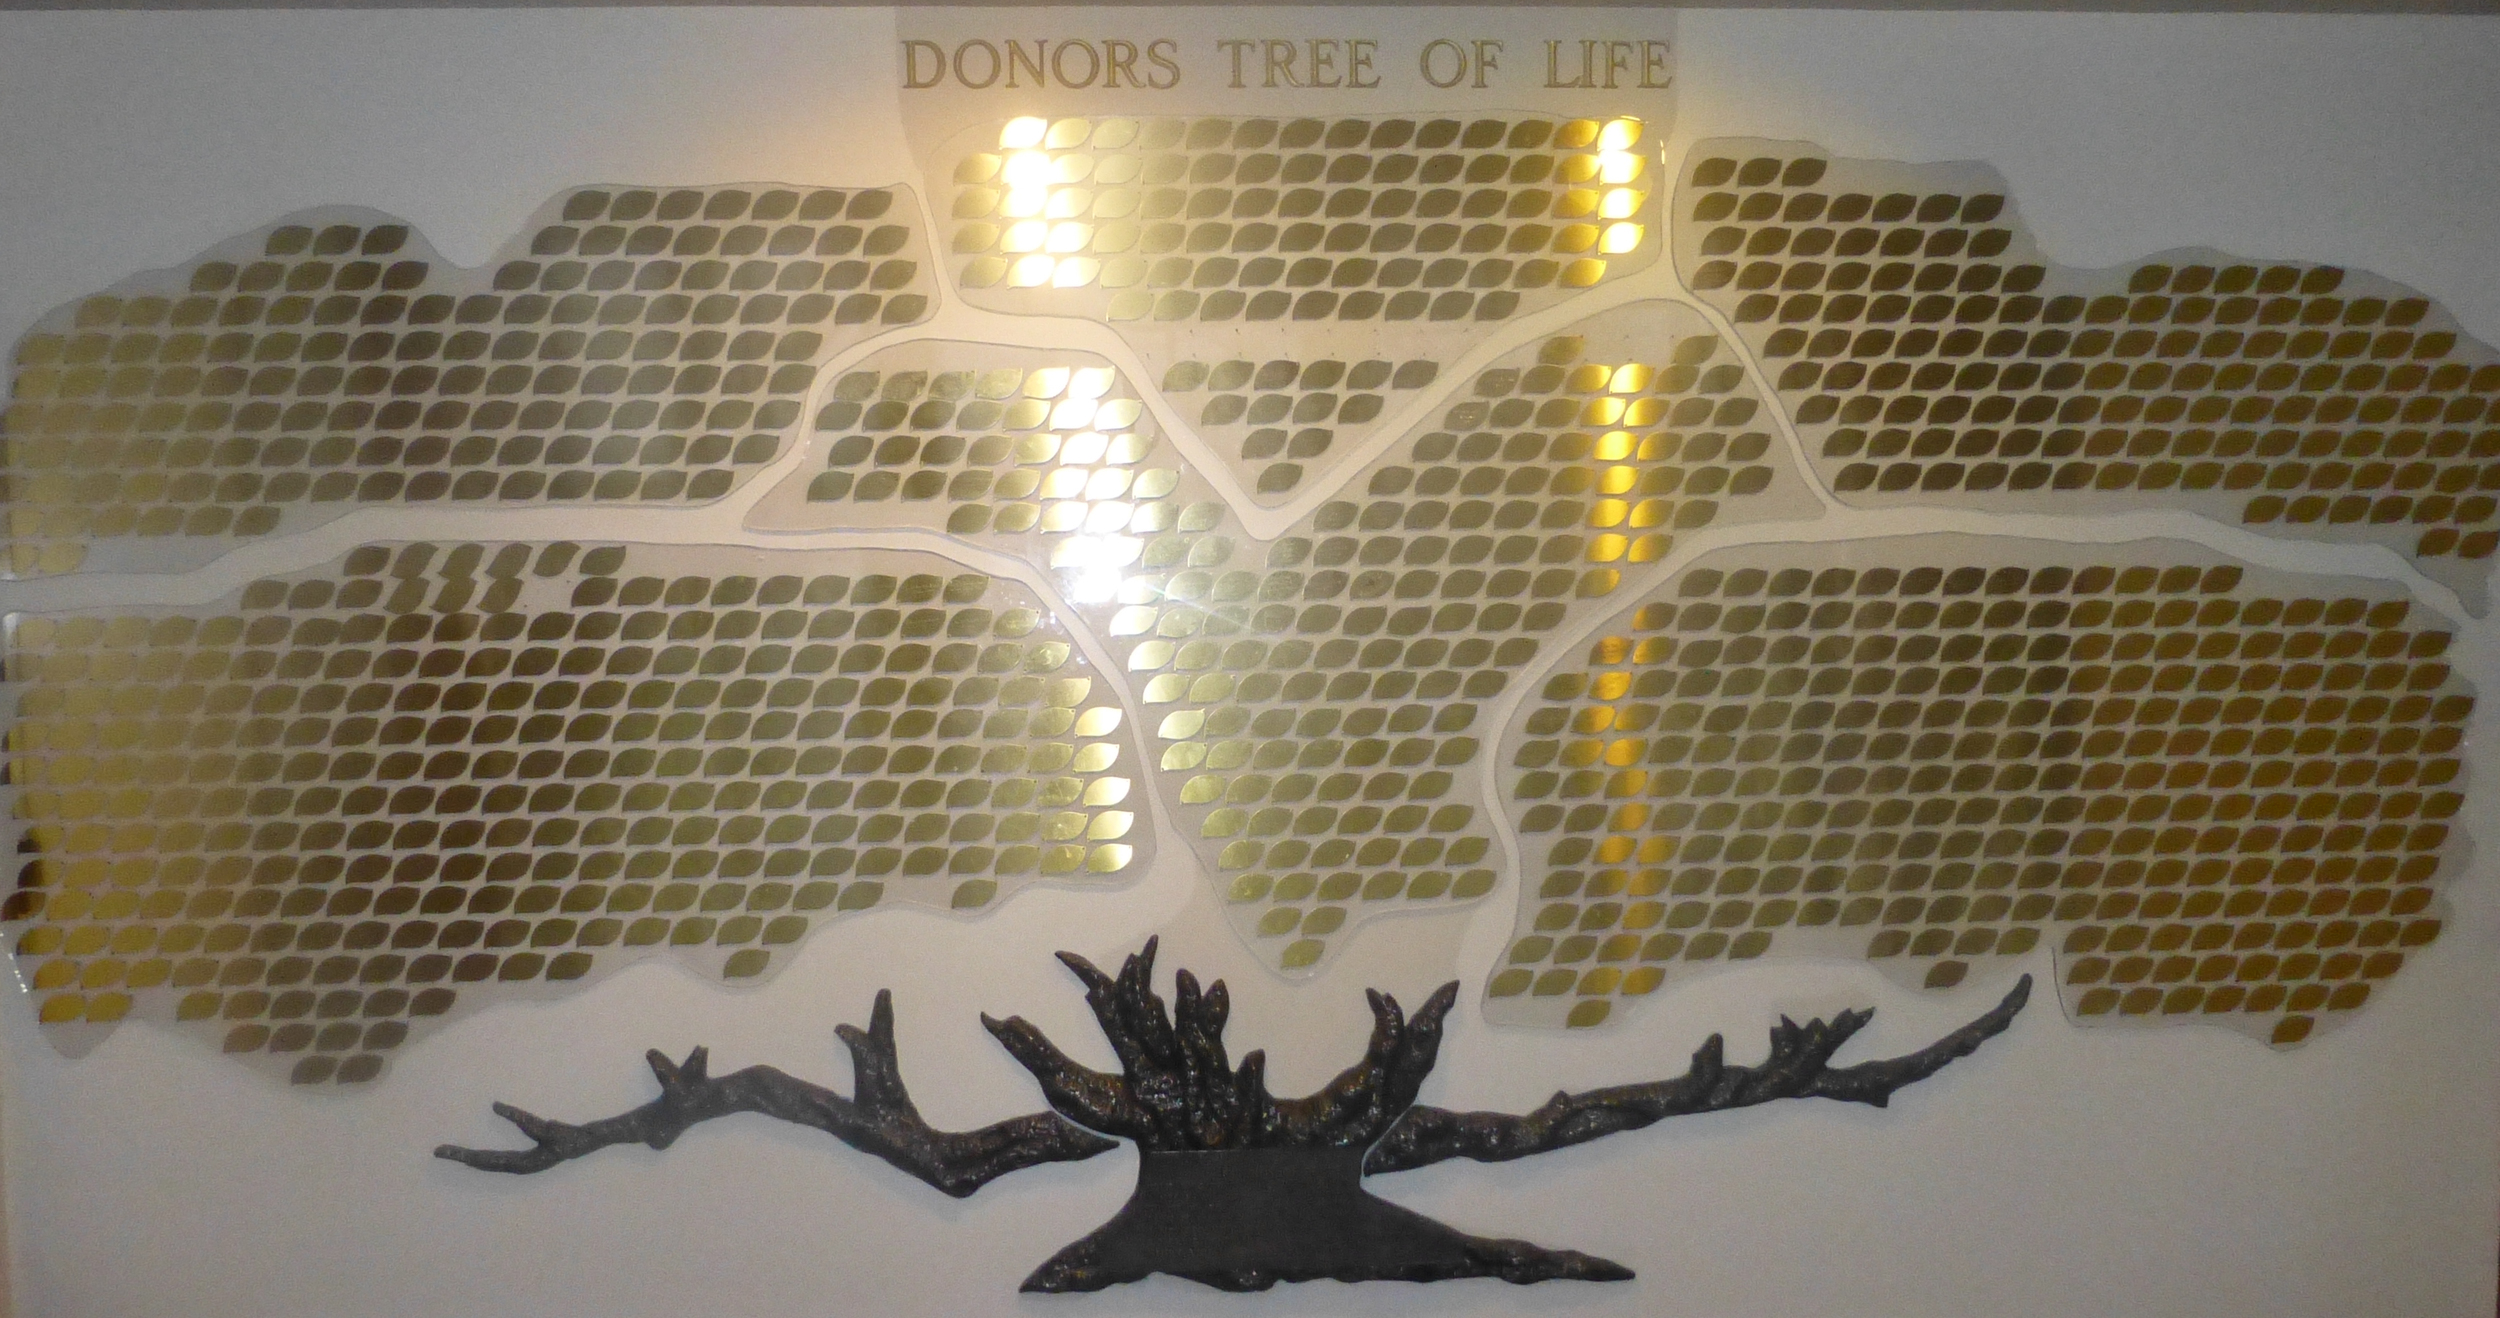 Donors Tree of Life.JPG